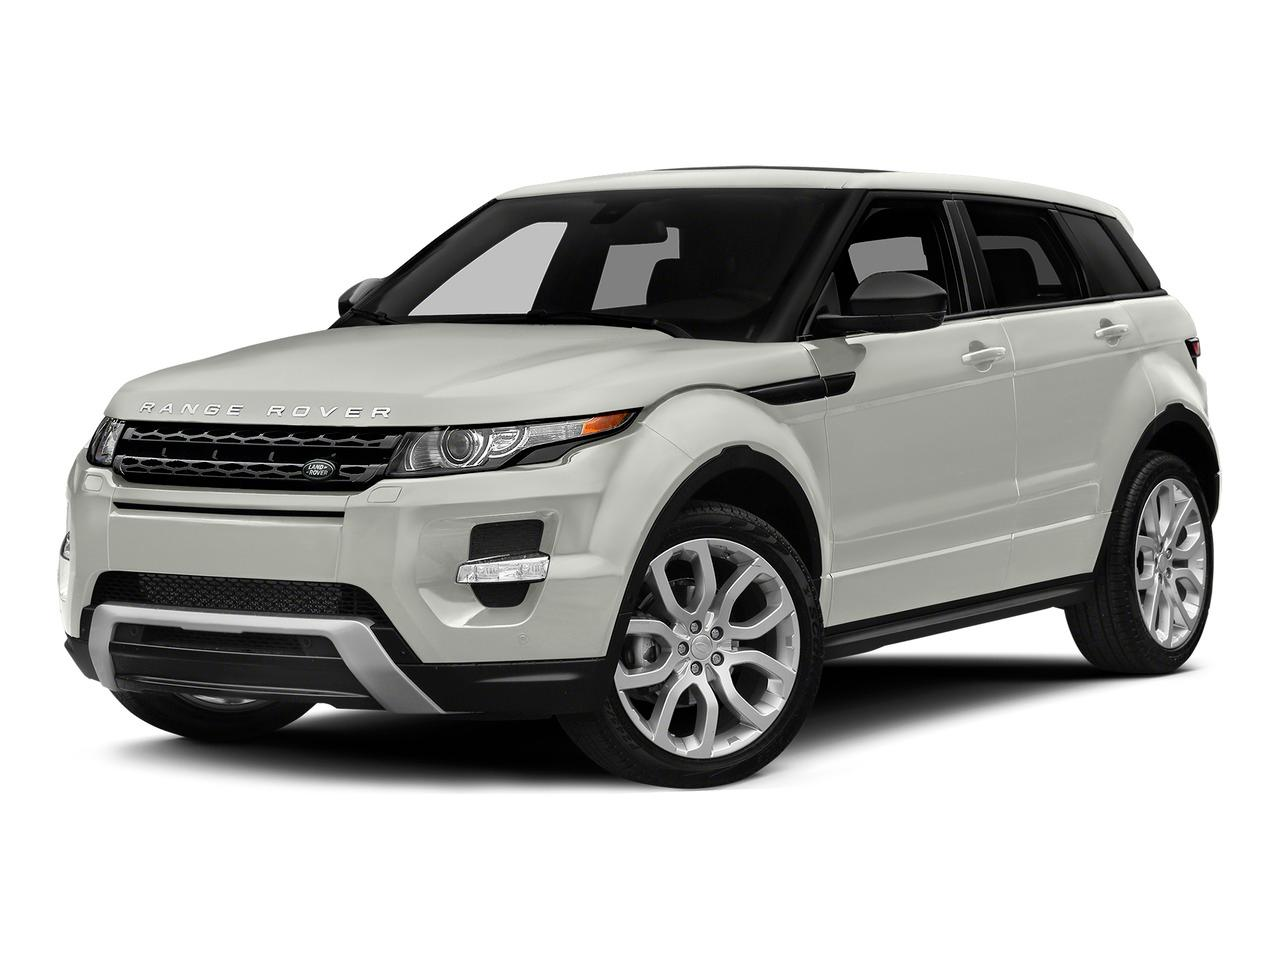 2015 Land Rover Range Rover Evoque Vehicle Photo in Killeen, TX 76541